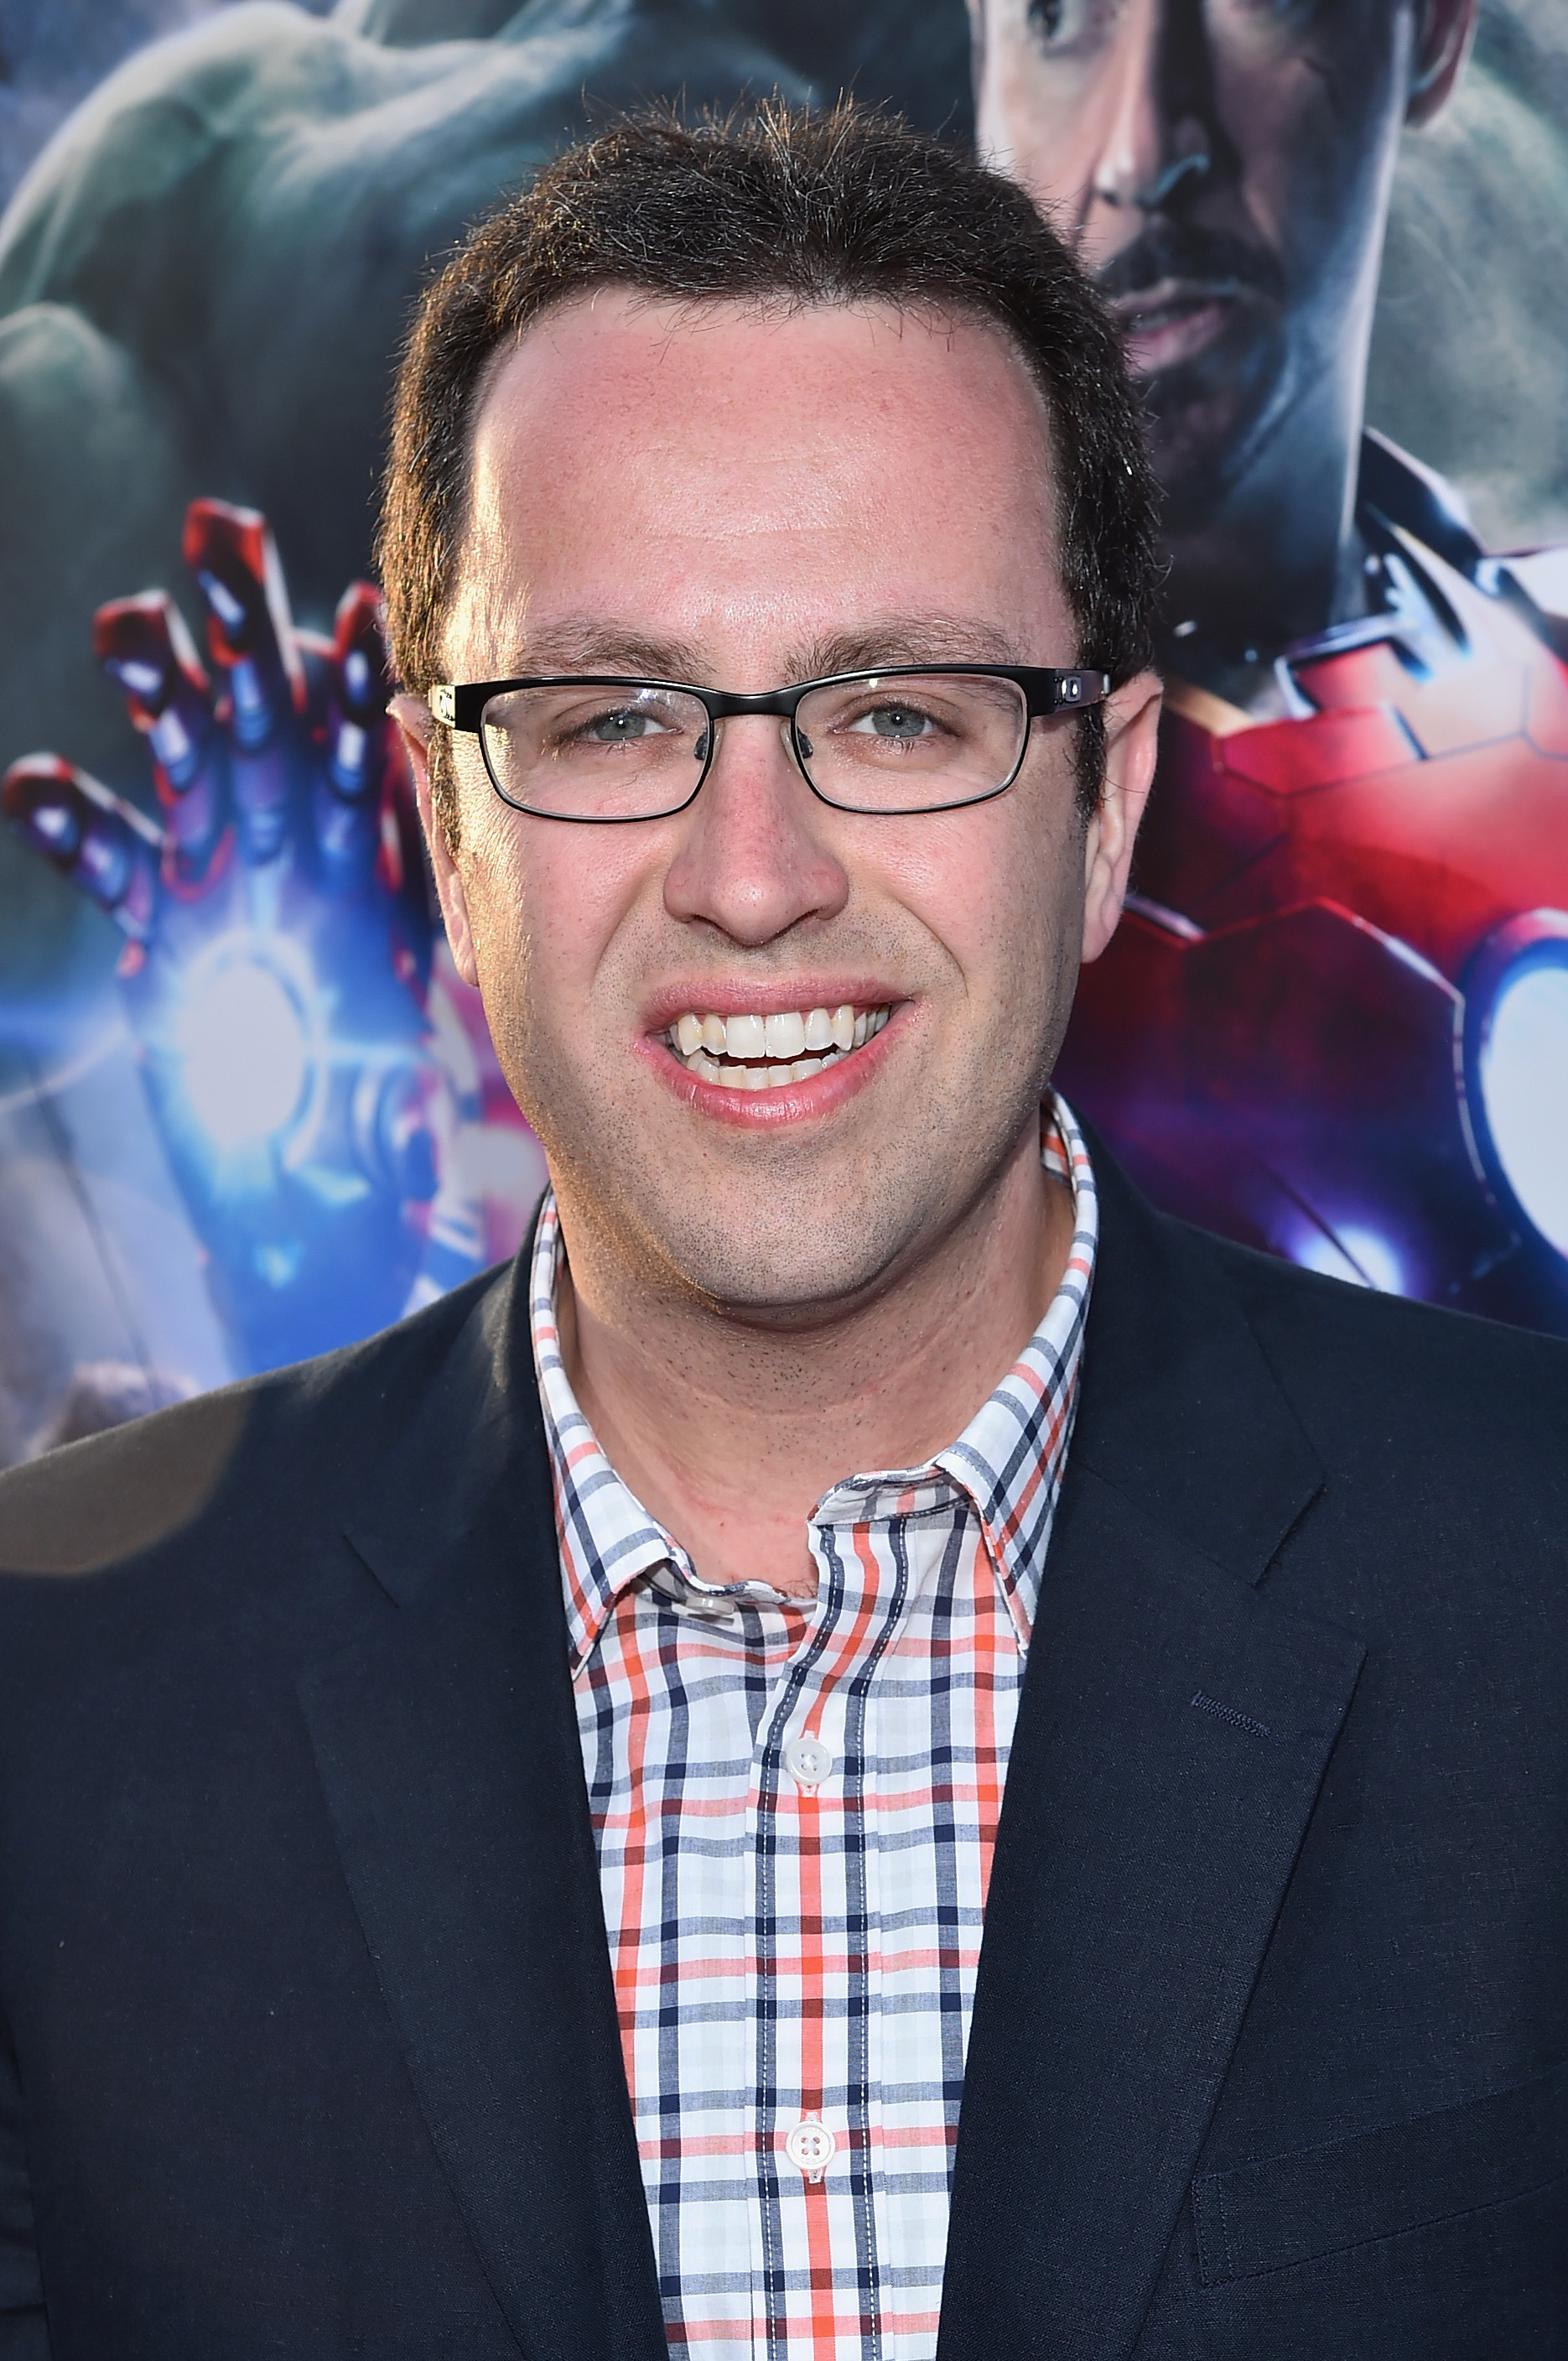 Jared Fogle's incriminating text messages revealed - yes, they're as disturbing as you think